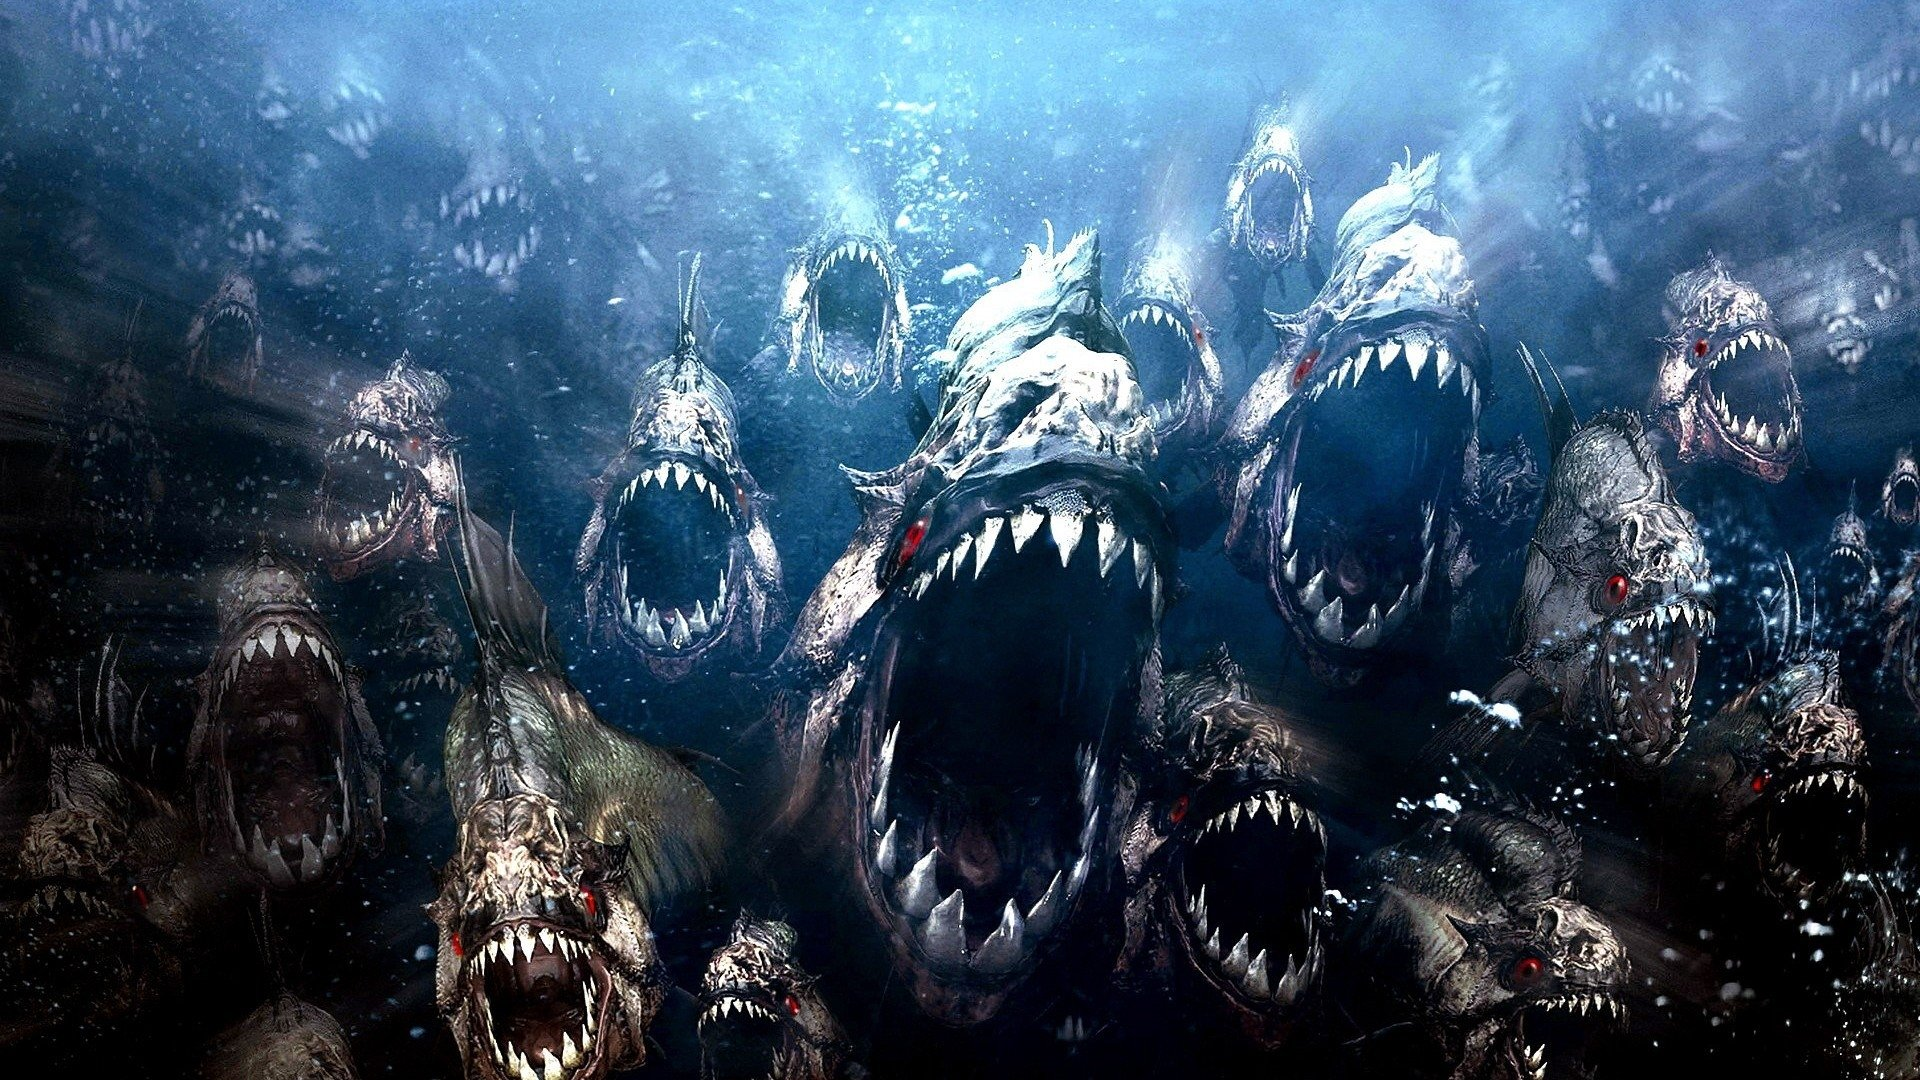 9 piranha hd wallpapers | background images - wallpaper abyss